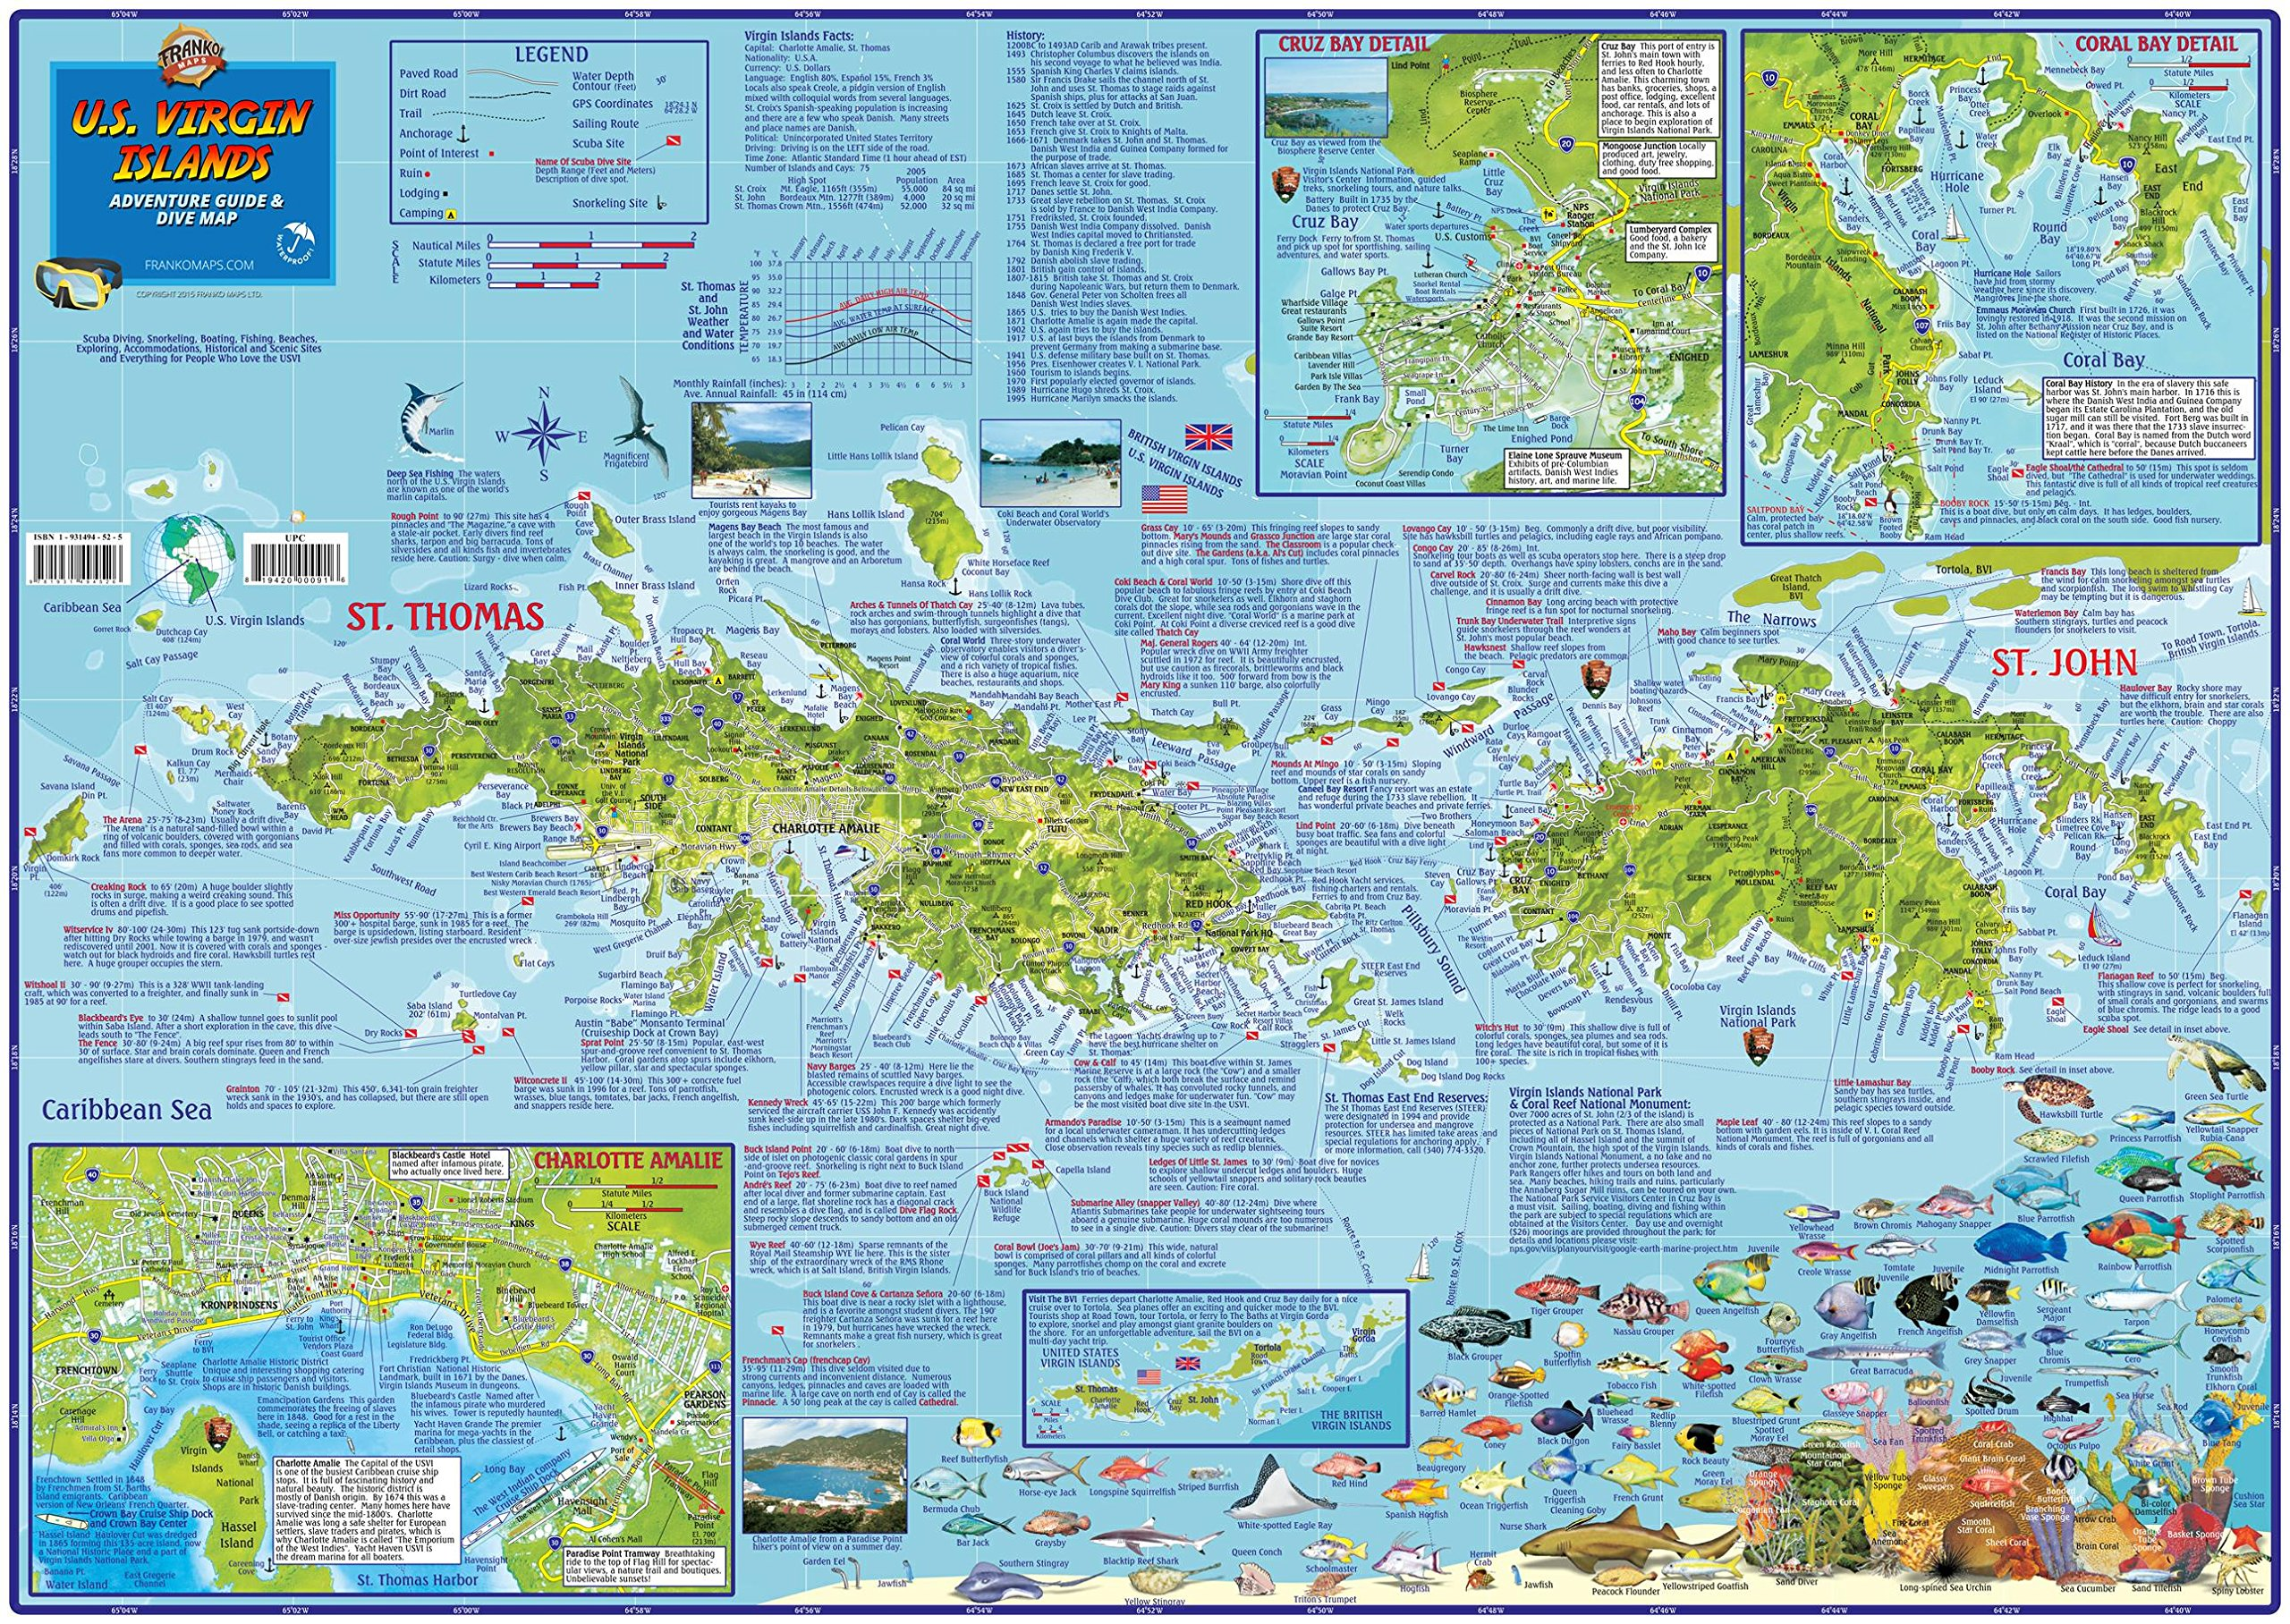 U.S. Virgin Islands Dive & Adventure Guide USVI Dive Map Franko Maps ...